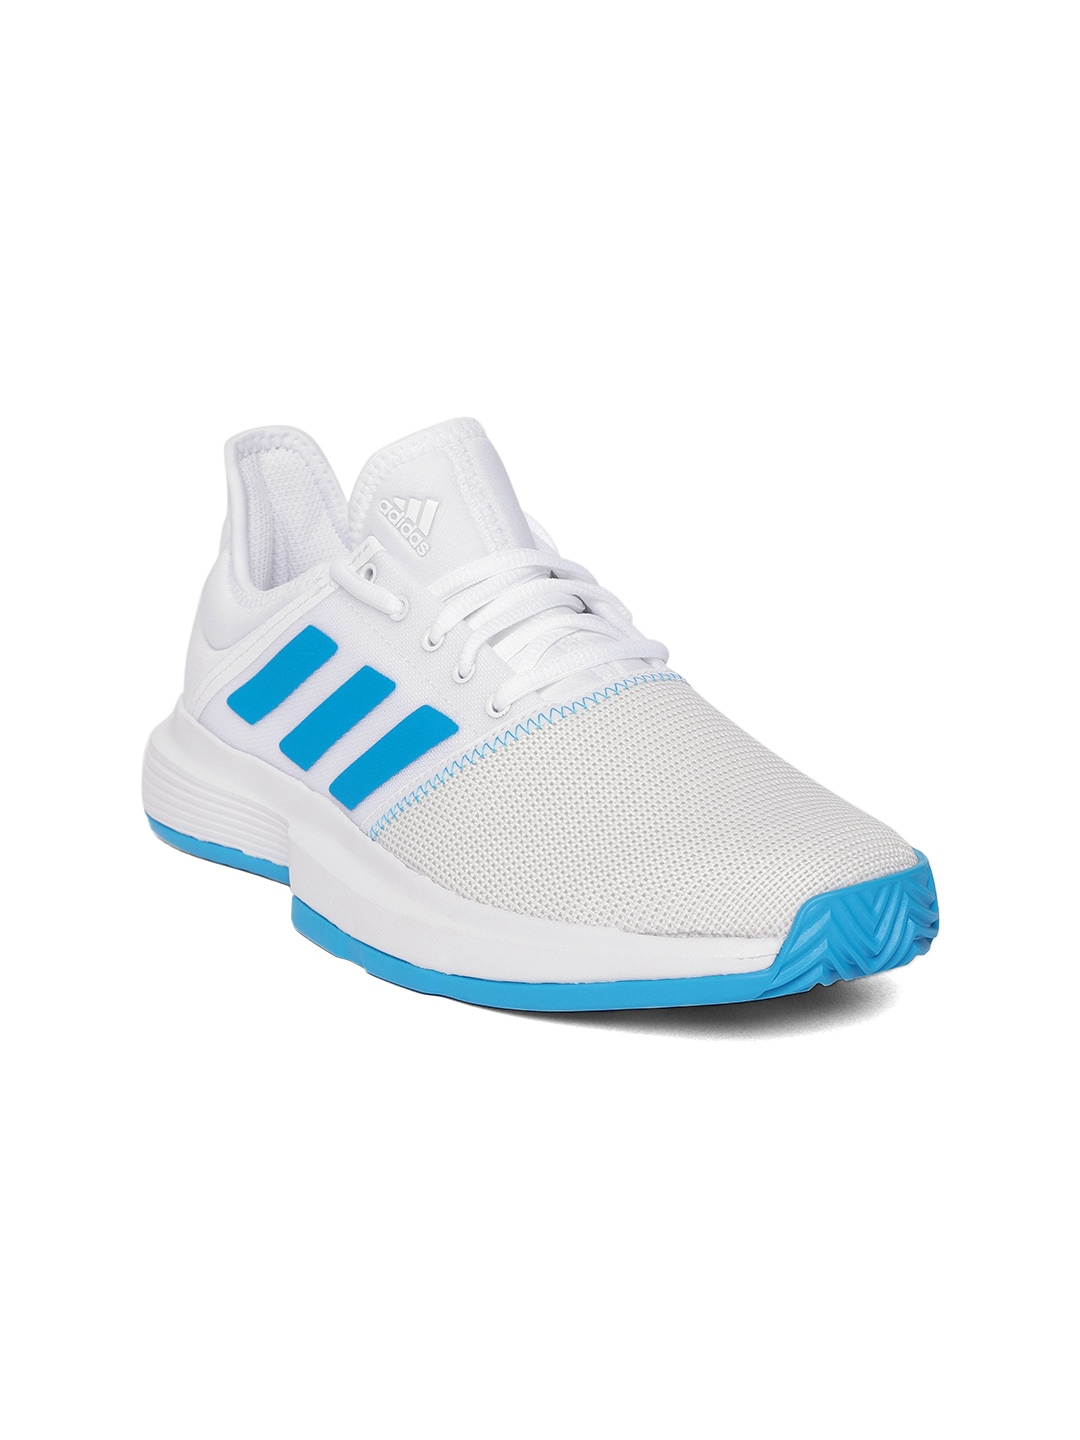 4e749a1302ff Adidas Football Shoes - Buy Adidas Football Shoes for Men Online in India